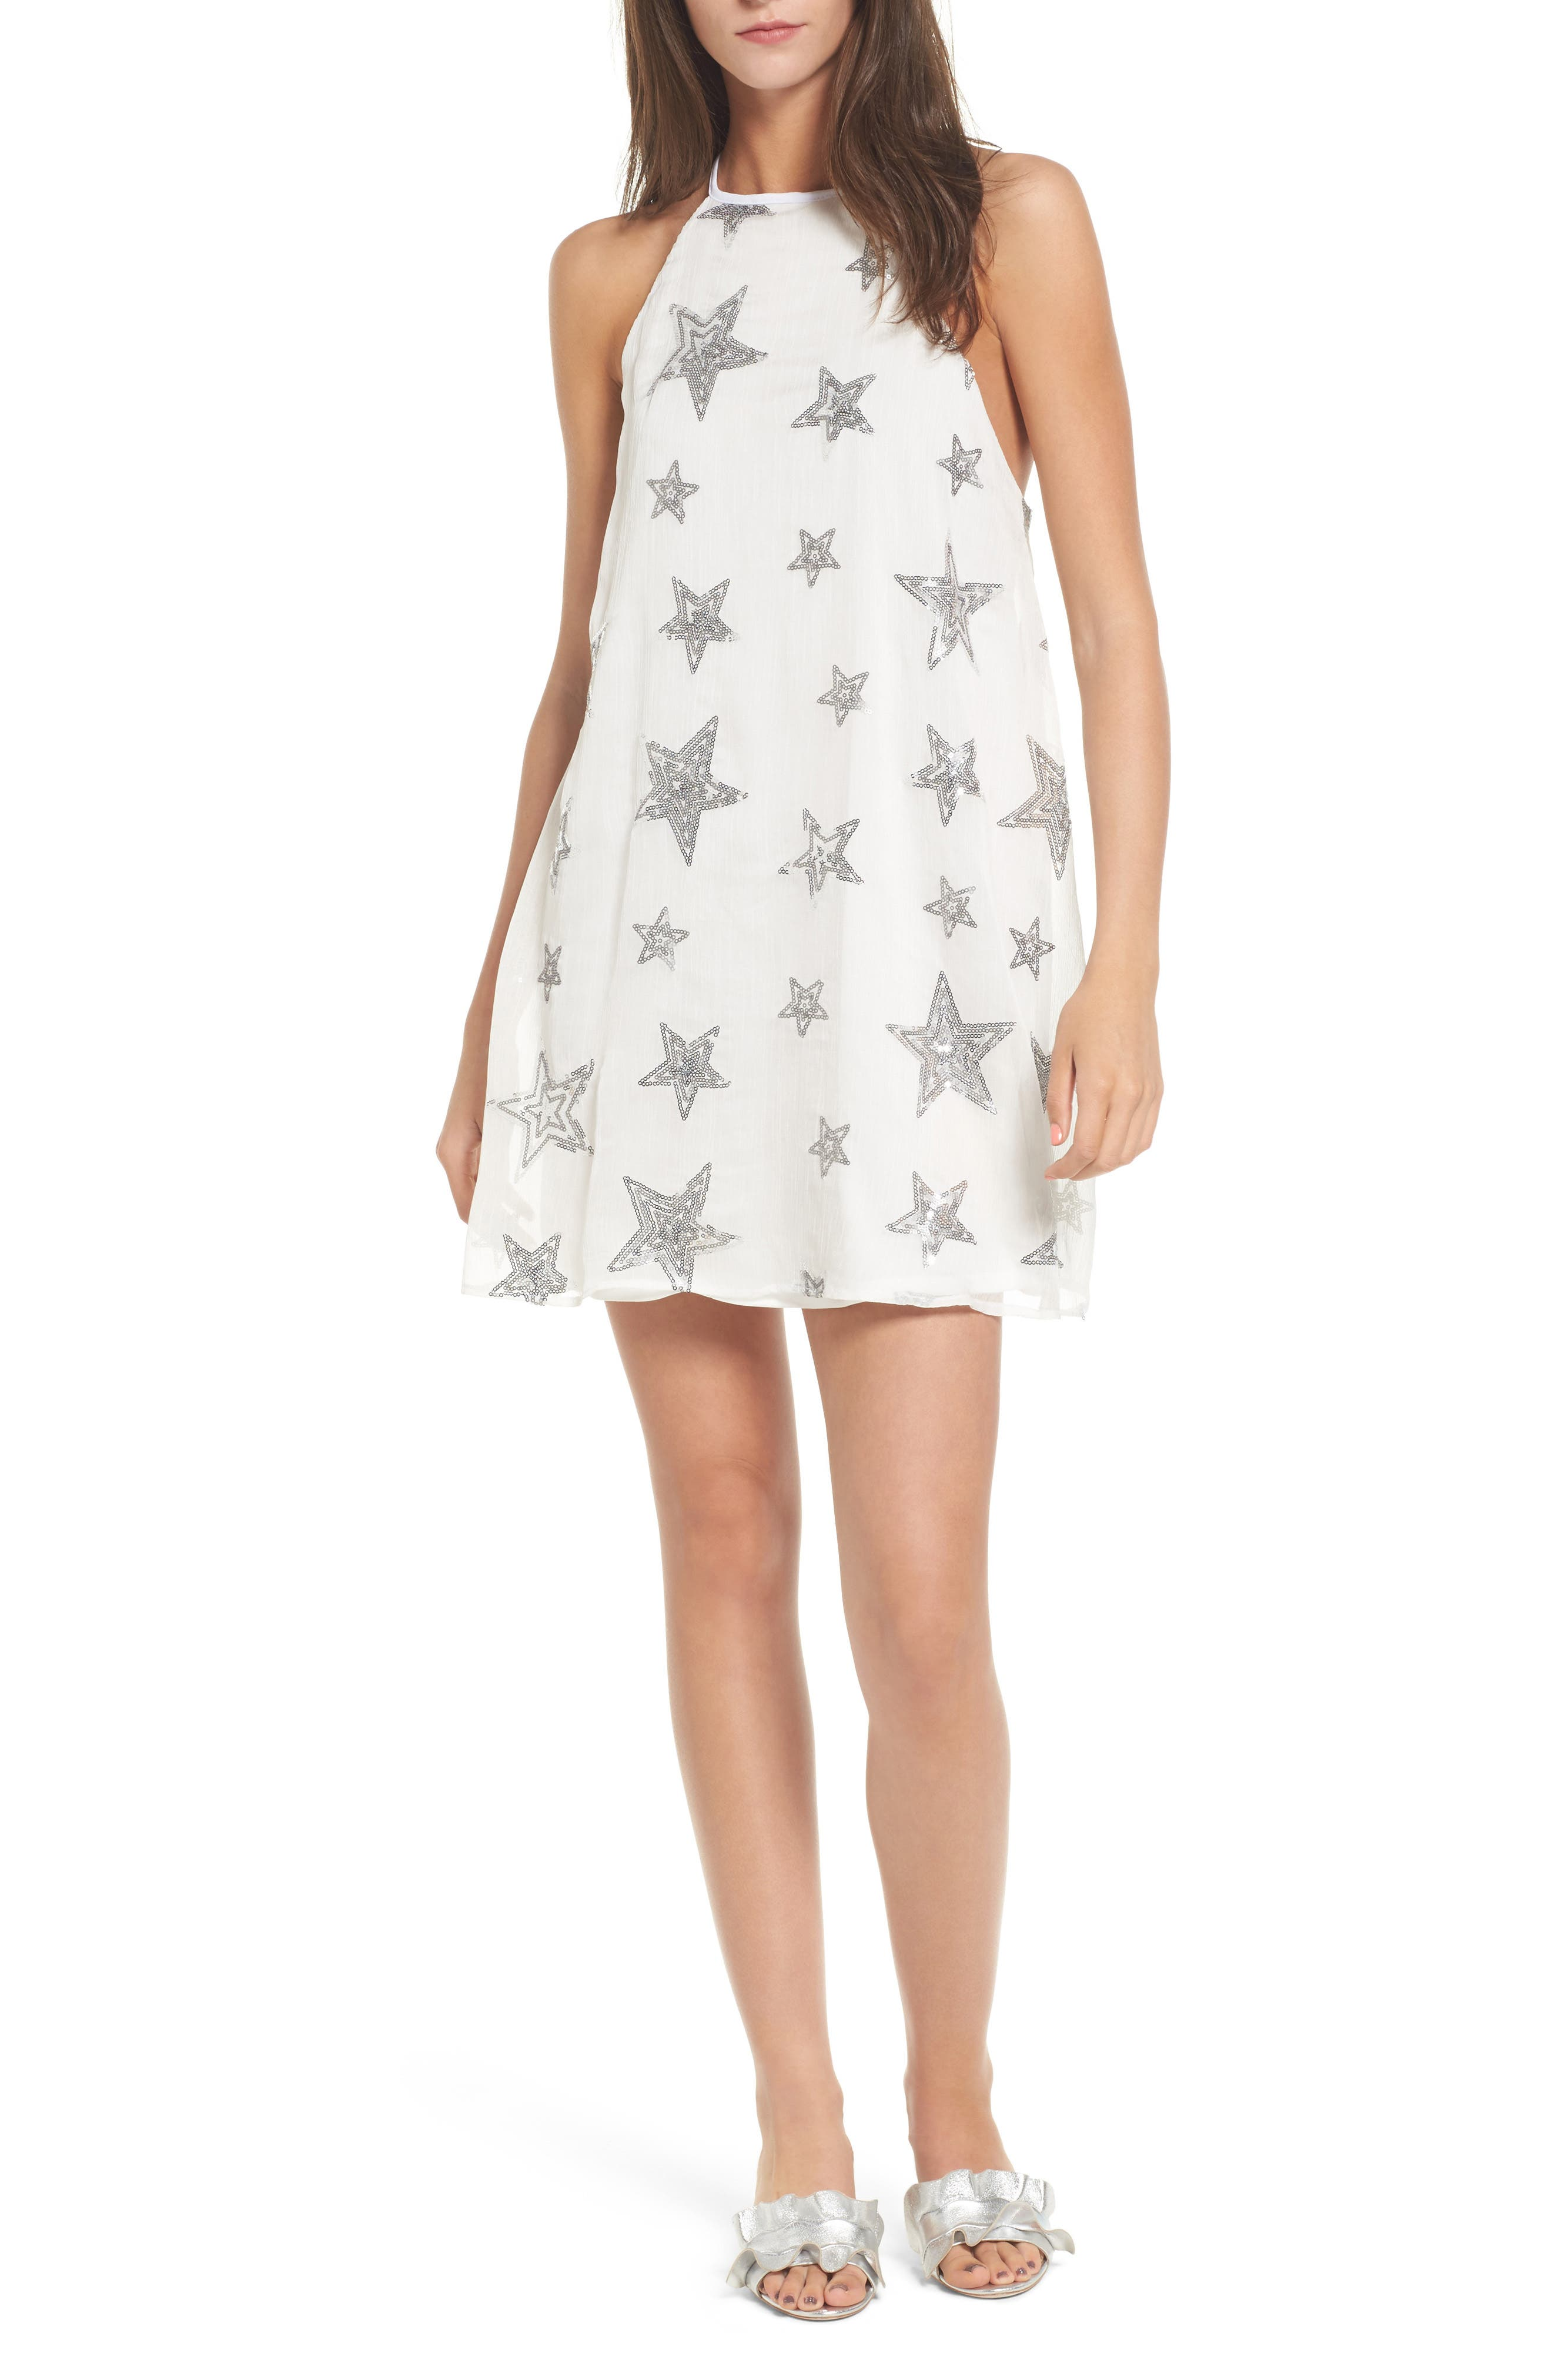 Gomez Embroidered Shift Dress,                             Main thumbnail 1, color,                             100